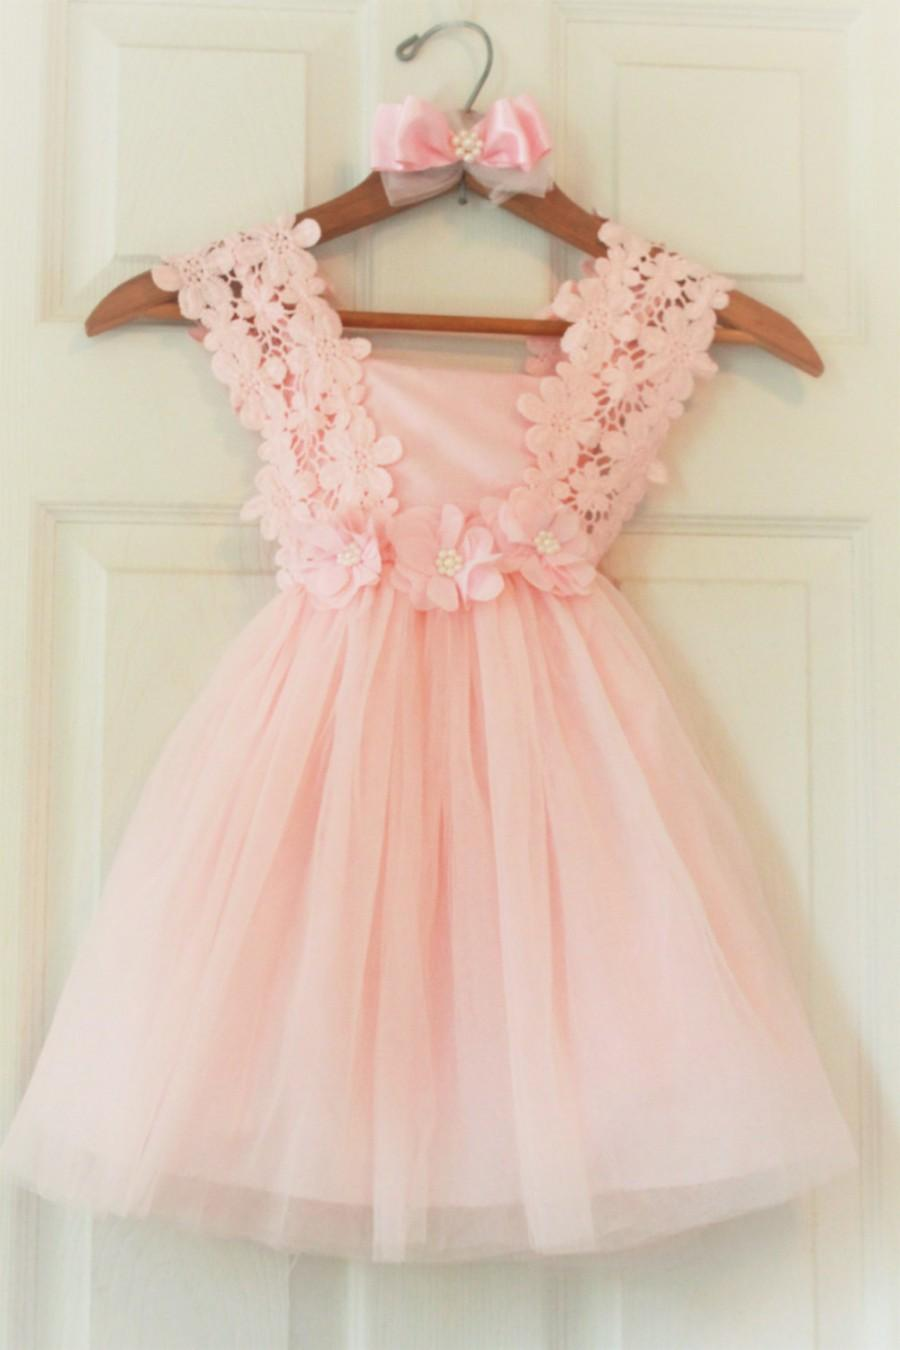 Flower girl dress flower girl dress light pink birthday girl dress flower girl dress flower girl dress light pink birthday girl dress peagent pink dress toddler girls lace dresses mightylinksfo